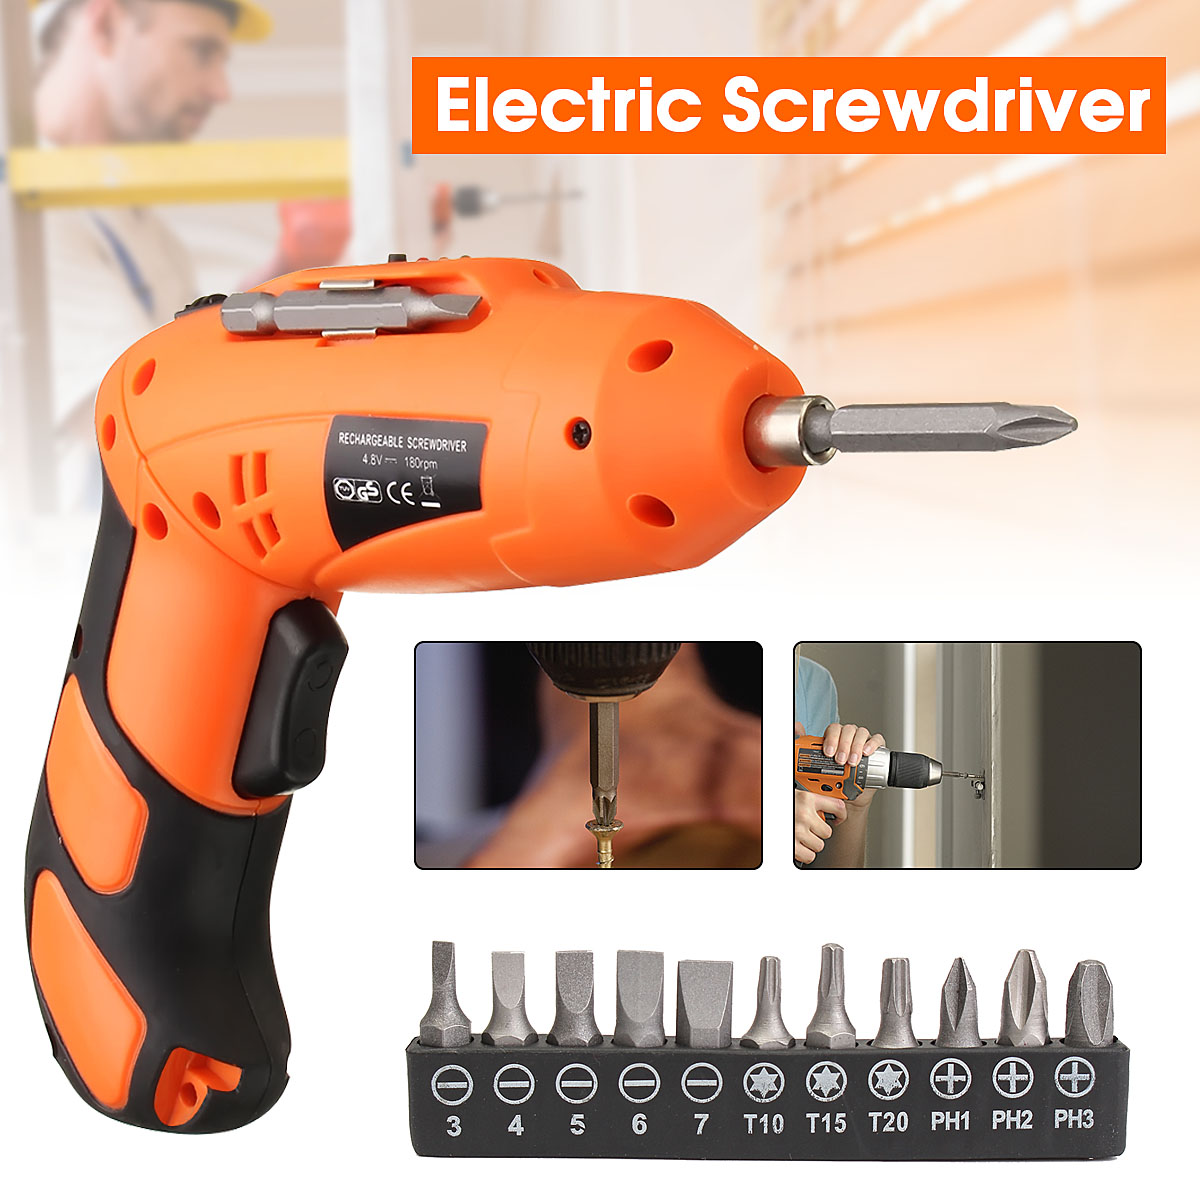 Grtsunsea Electric Screwdriver Mini Chargeable Electric Cordless Screwdriver +Drill Shank Star Hex Screwdriver Bit set +Magnetic Bit Holder